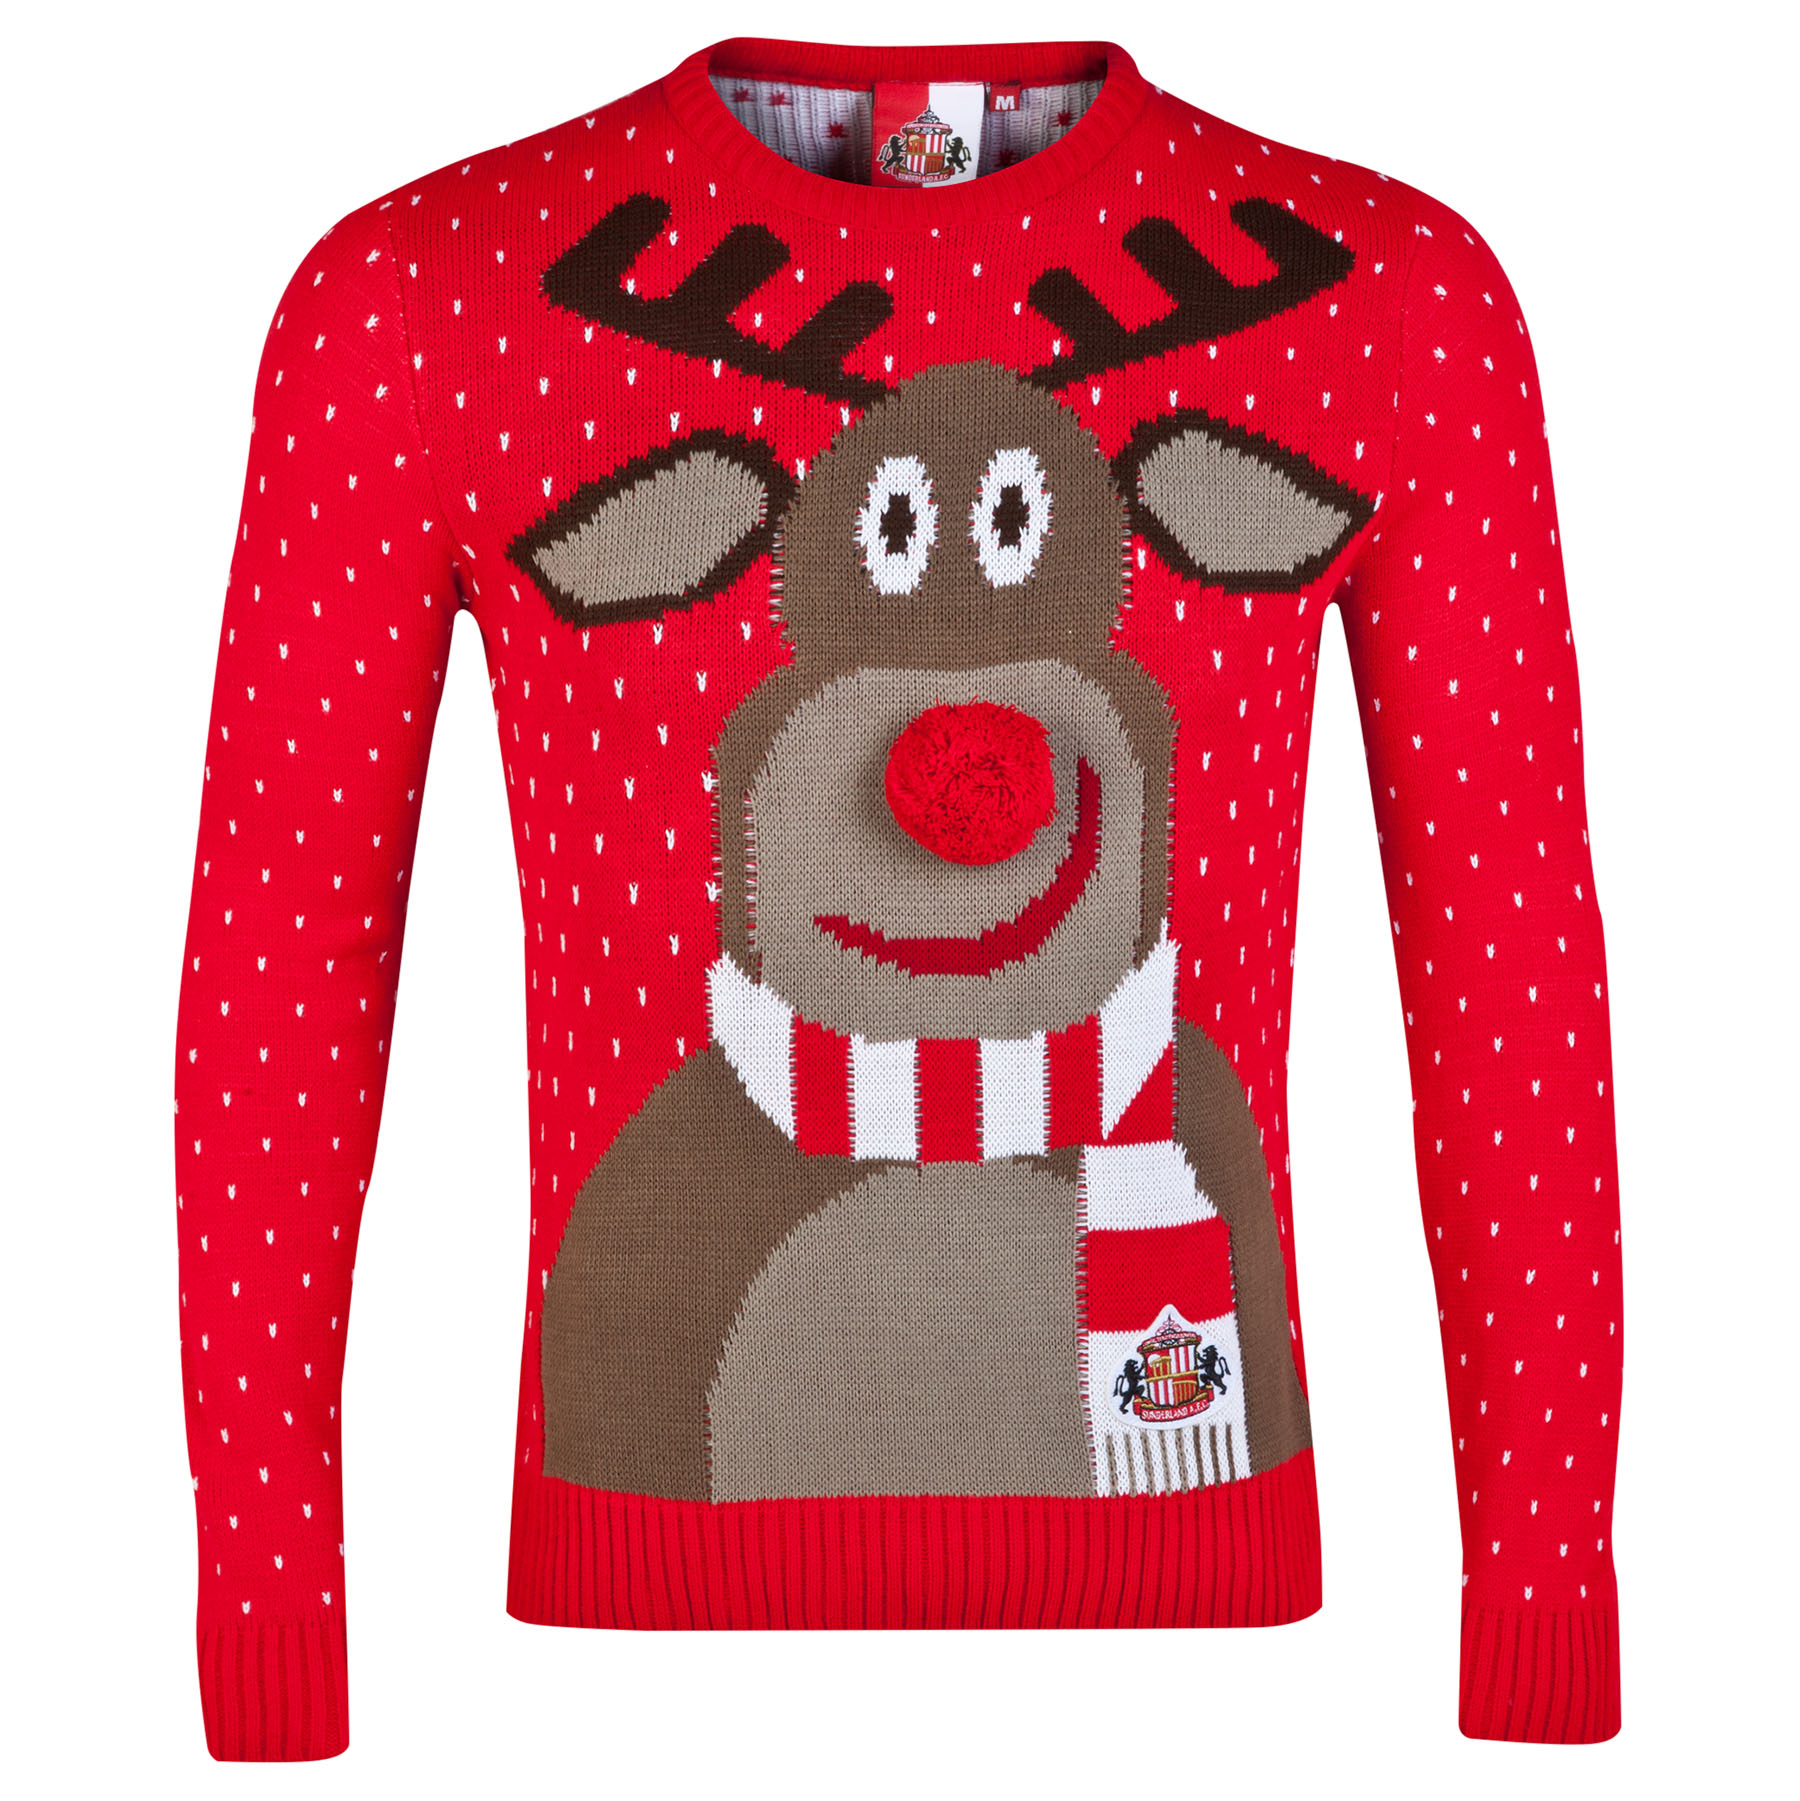 Sunderland Christmas Jumper - Red - Adult